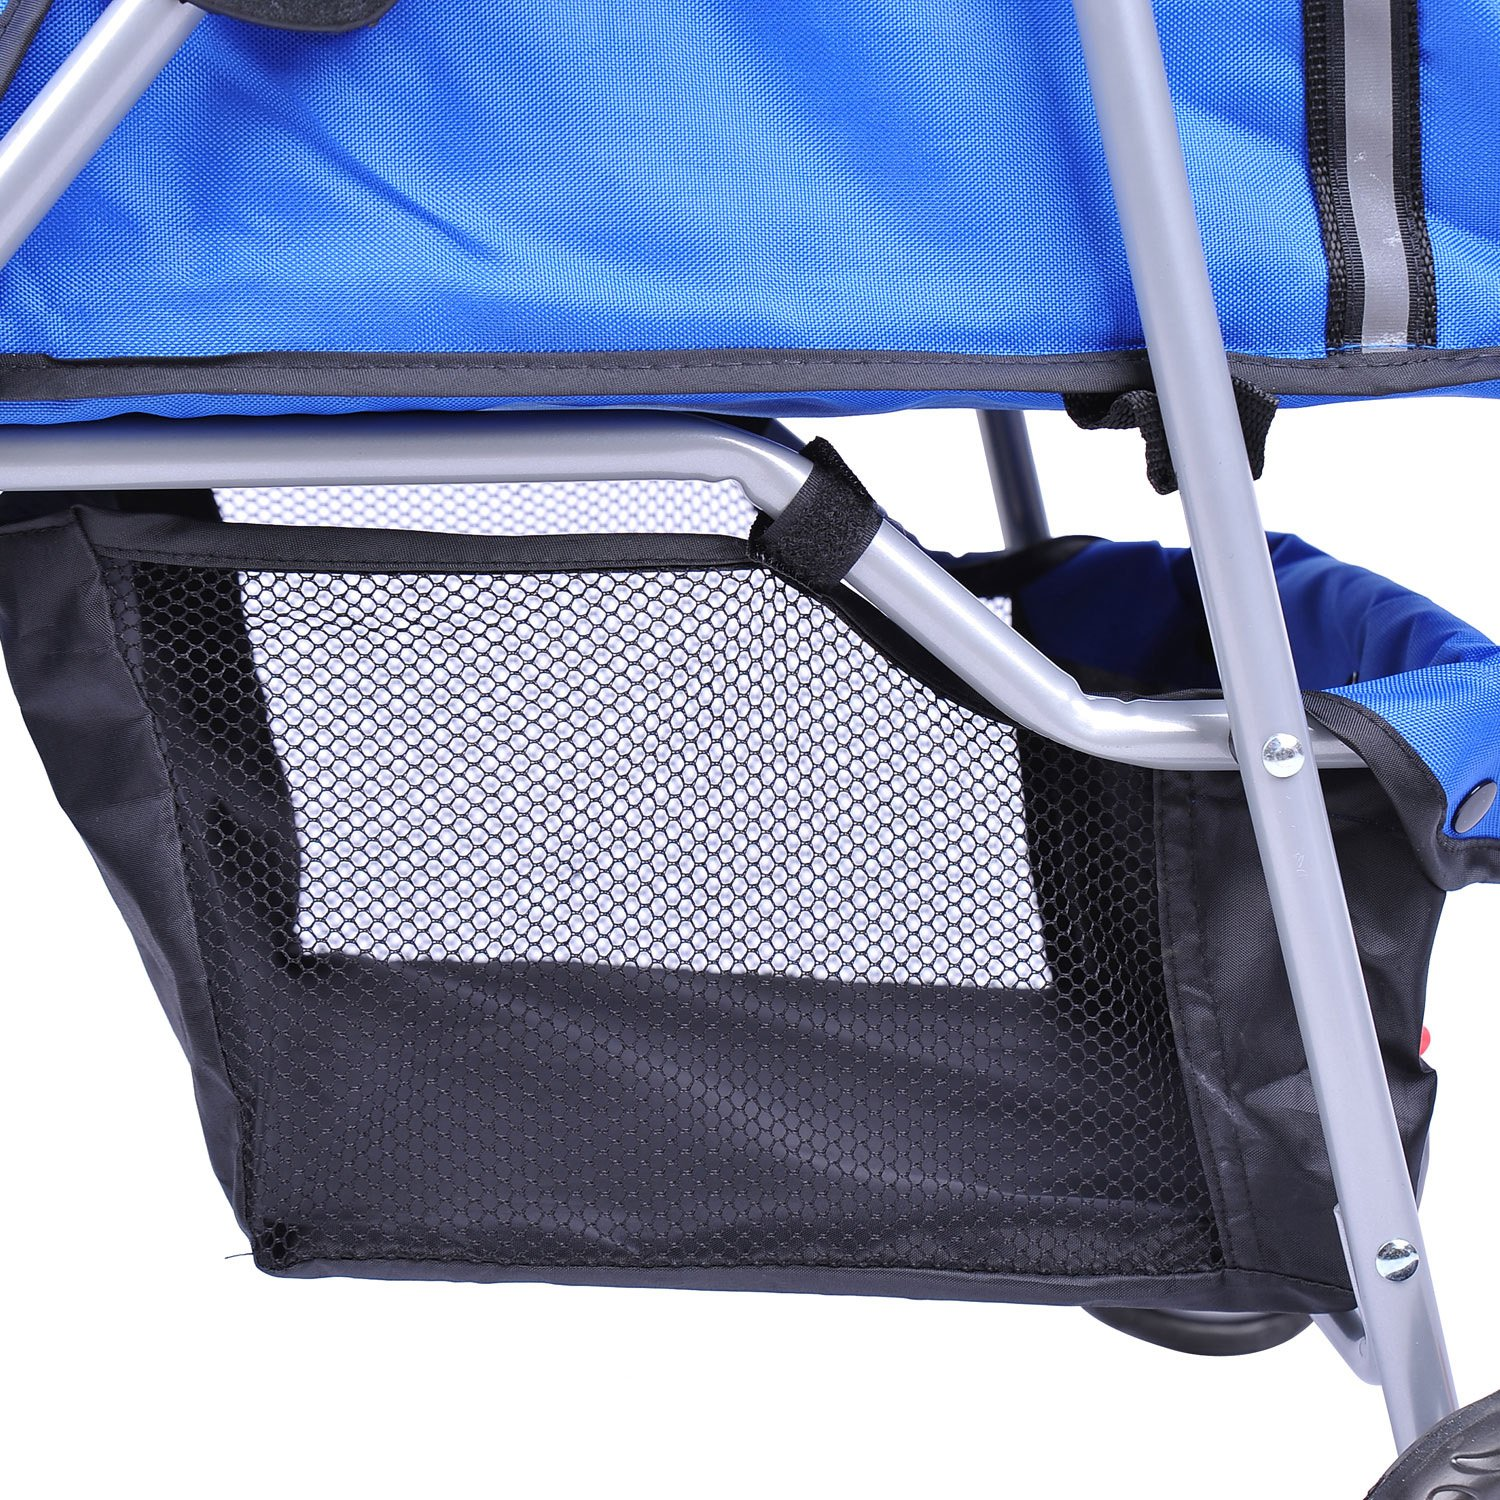 MDOG2 MK0015A 3-Wheel Front and Rear Entry Pet Stroller, Blue by MDOG2 (Image #6)